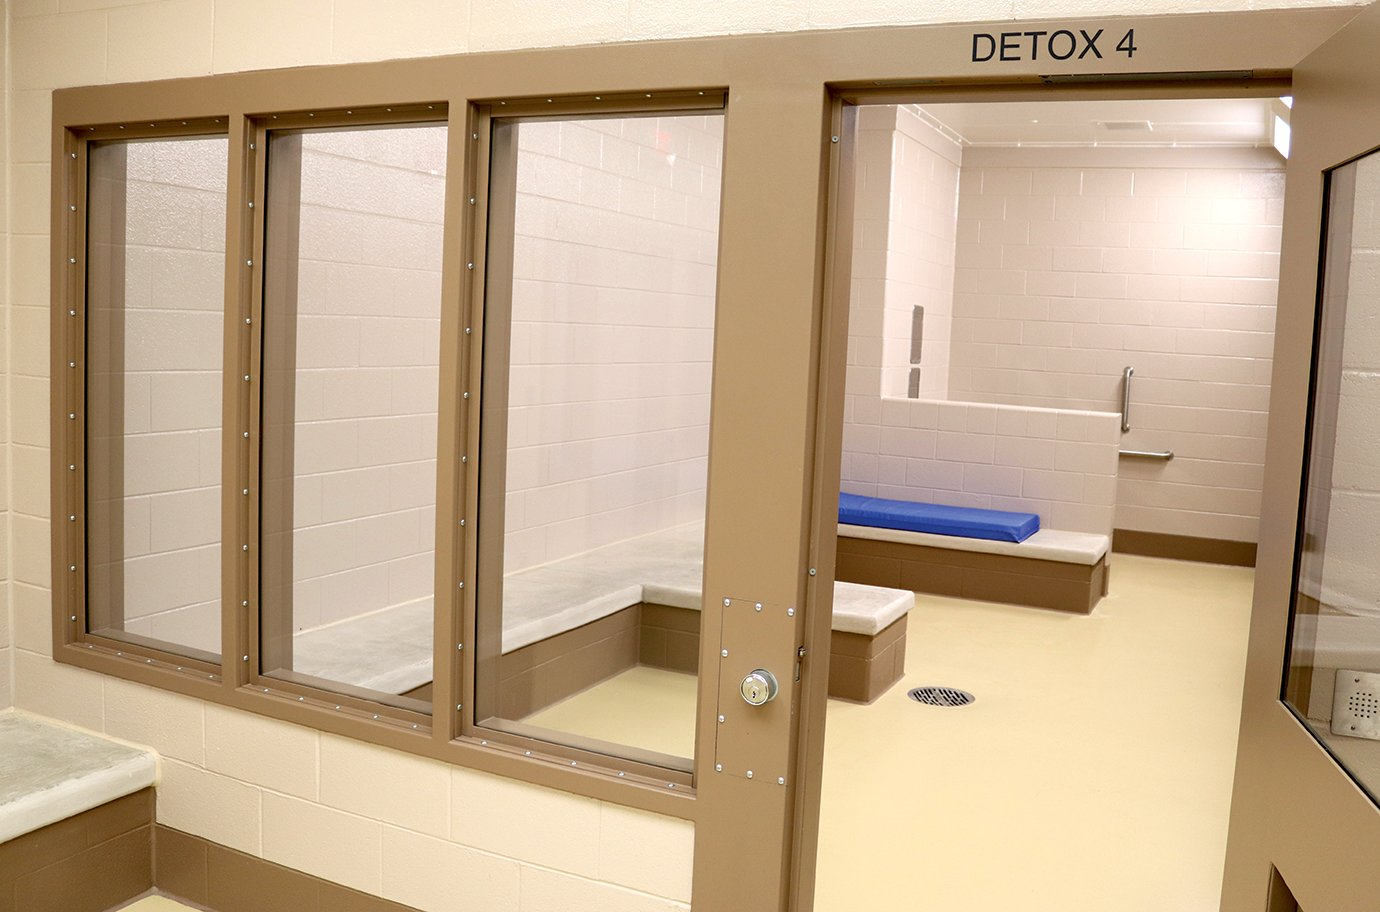 Larger detox rooms within the facility's holding area allow for more than one suspect at a time. Anywhere between 14 to 20 suspects can be held at once in two detox rooms.